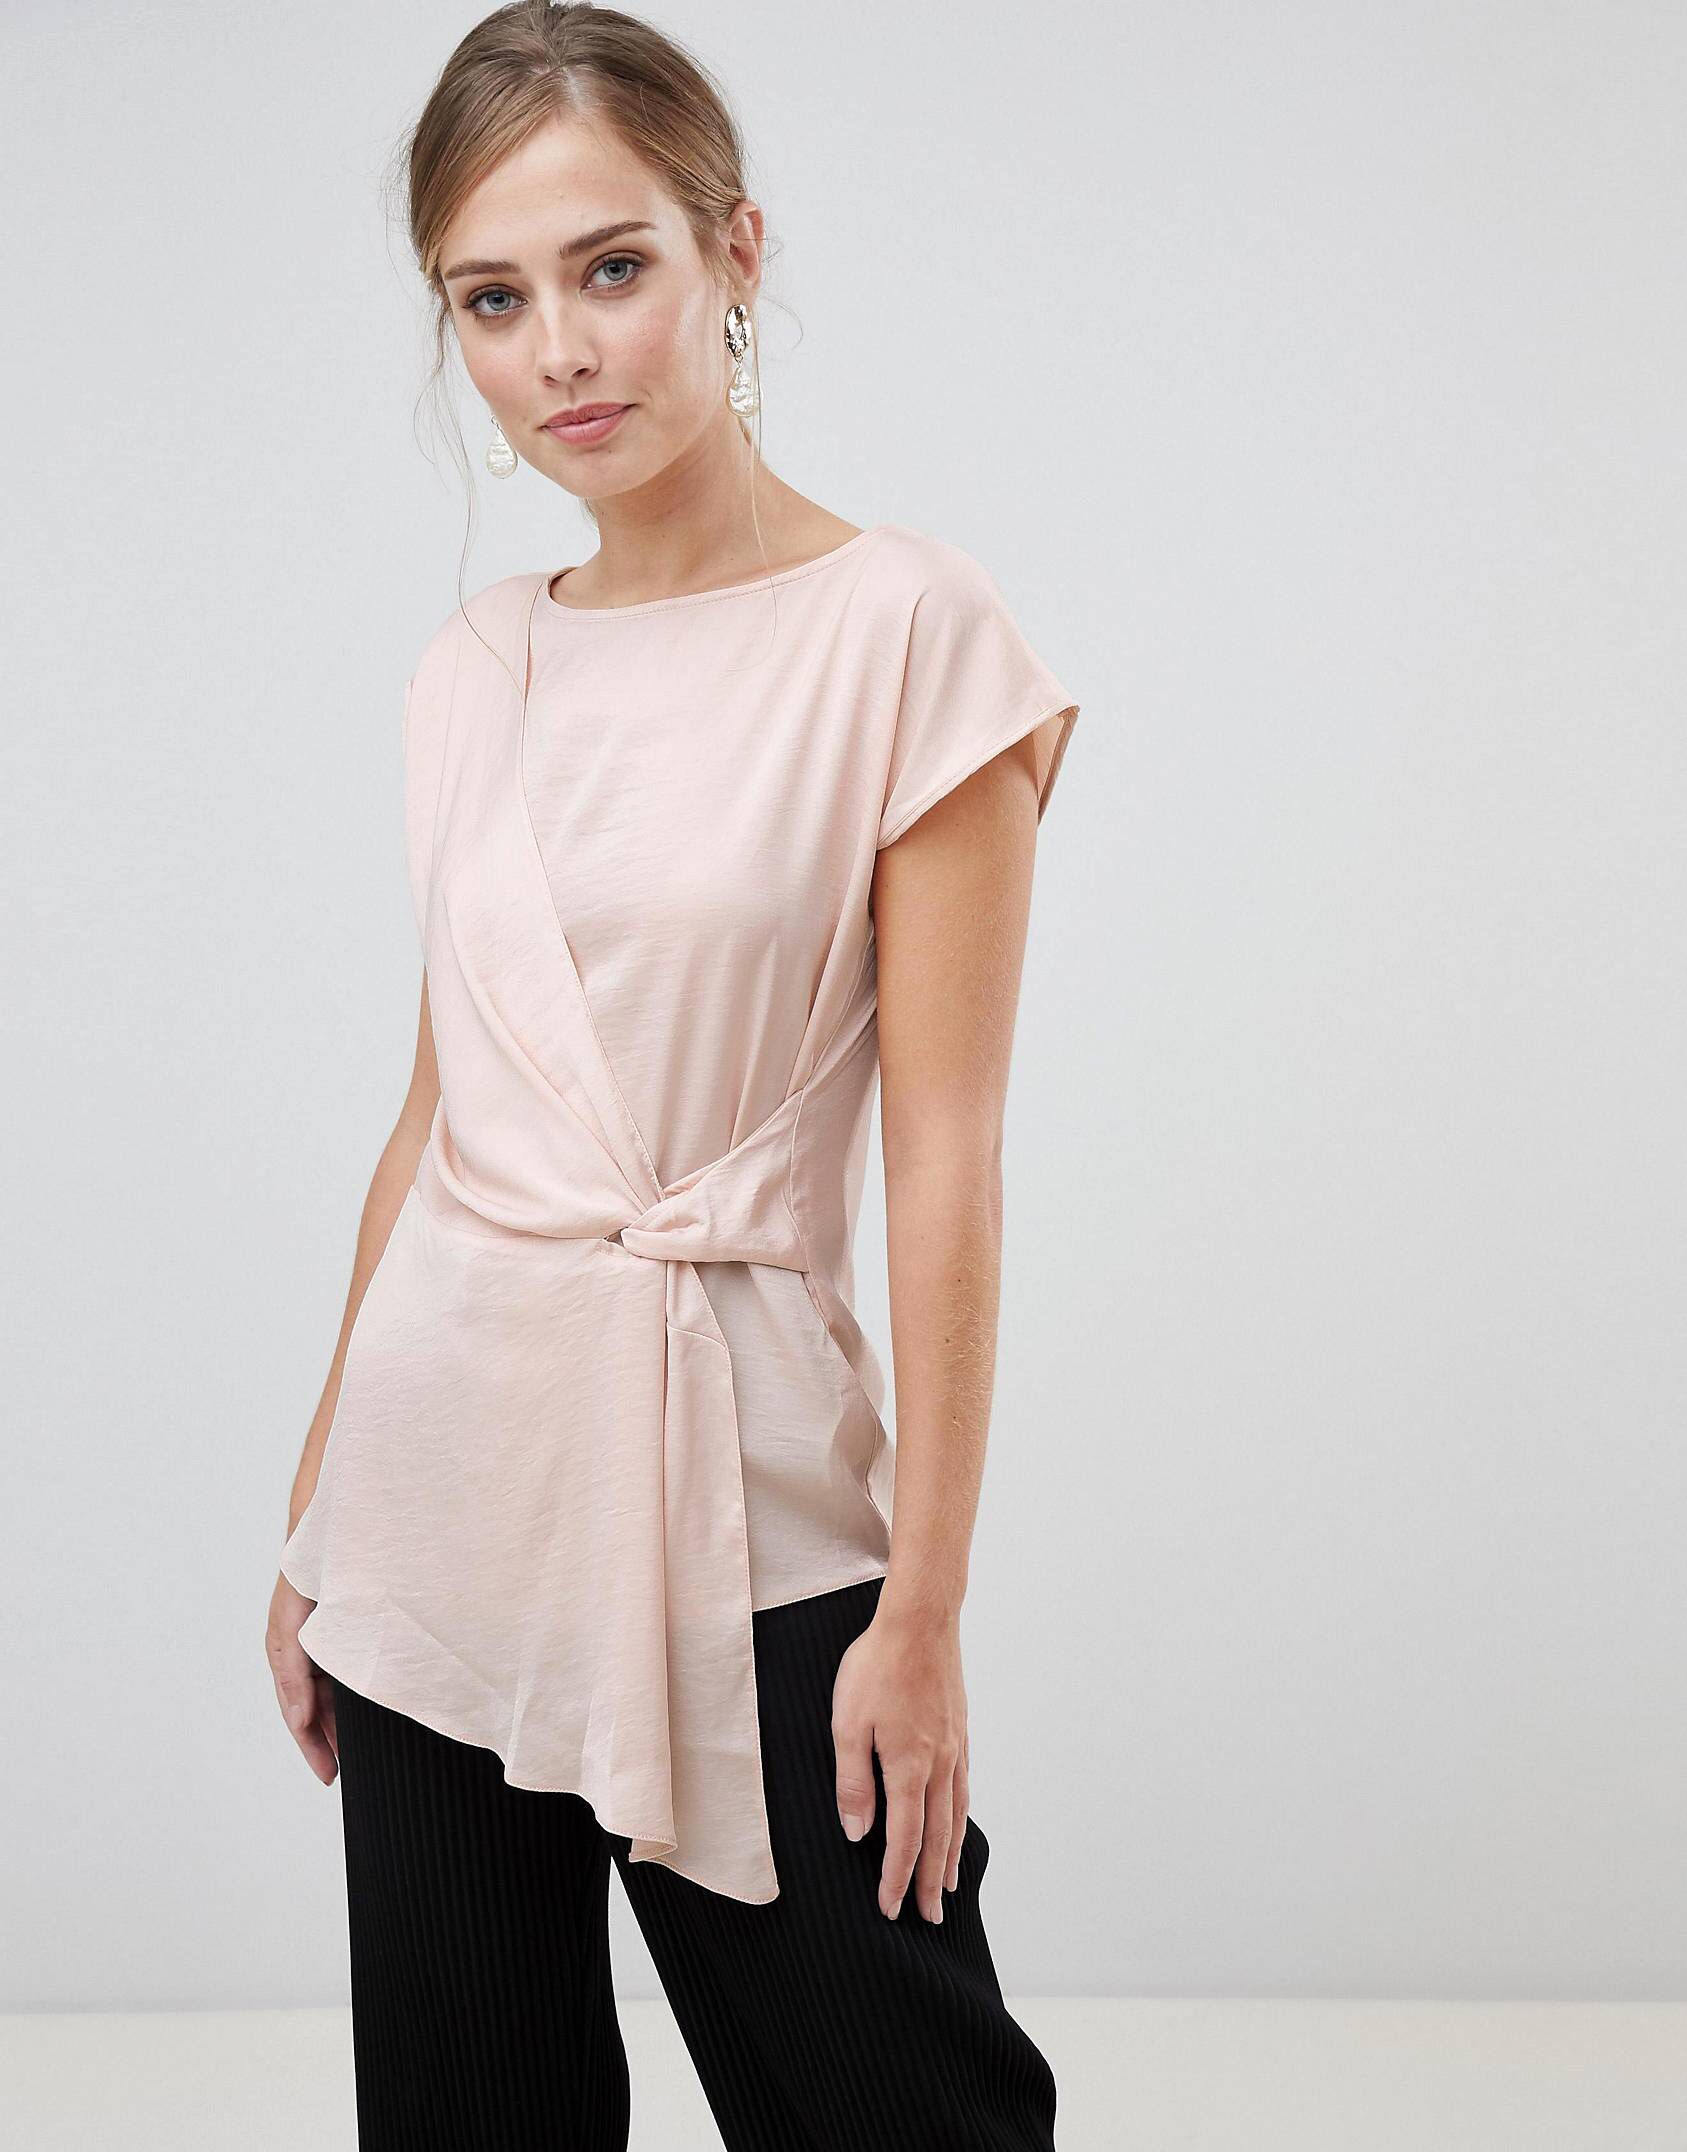 44f36f37b55e58 Oasis satin drape front top in pink in 2019 | Cozy | Tops, Tie front ...